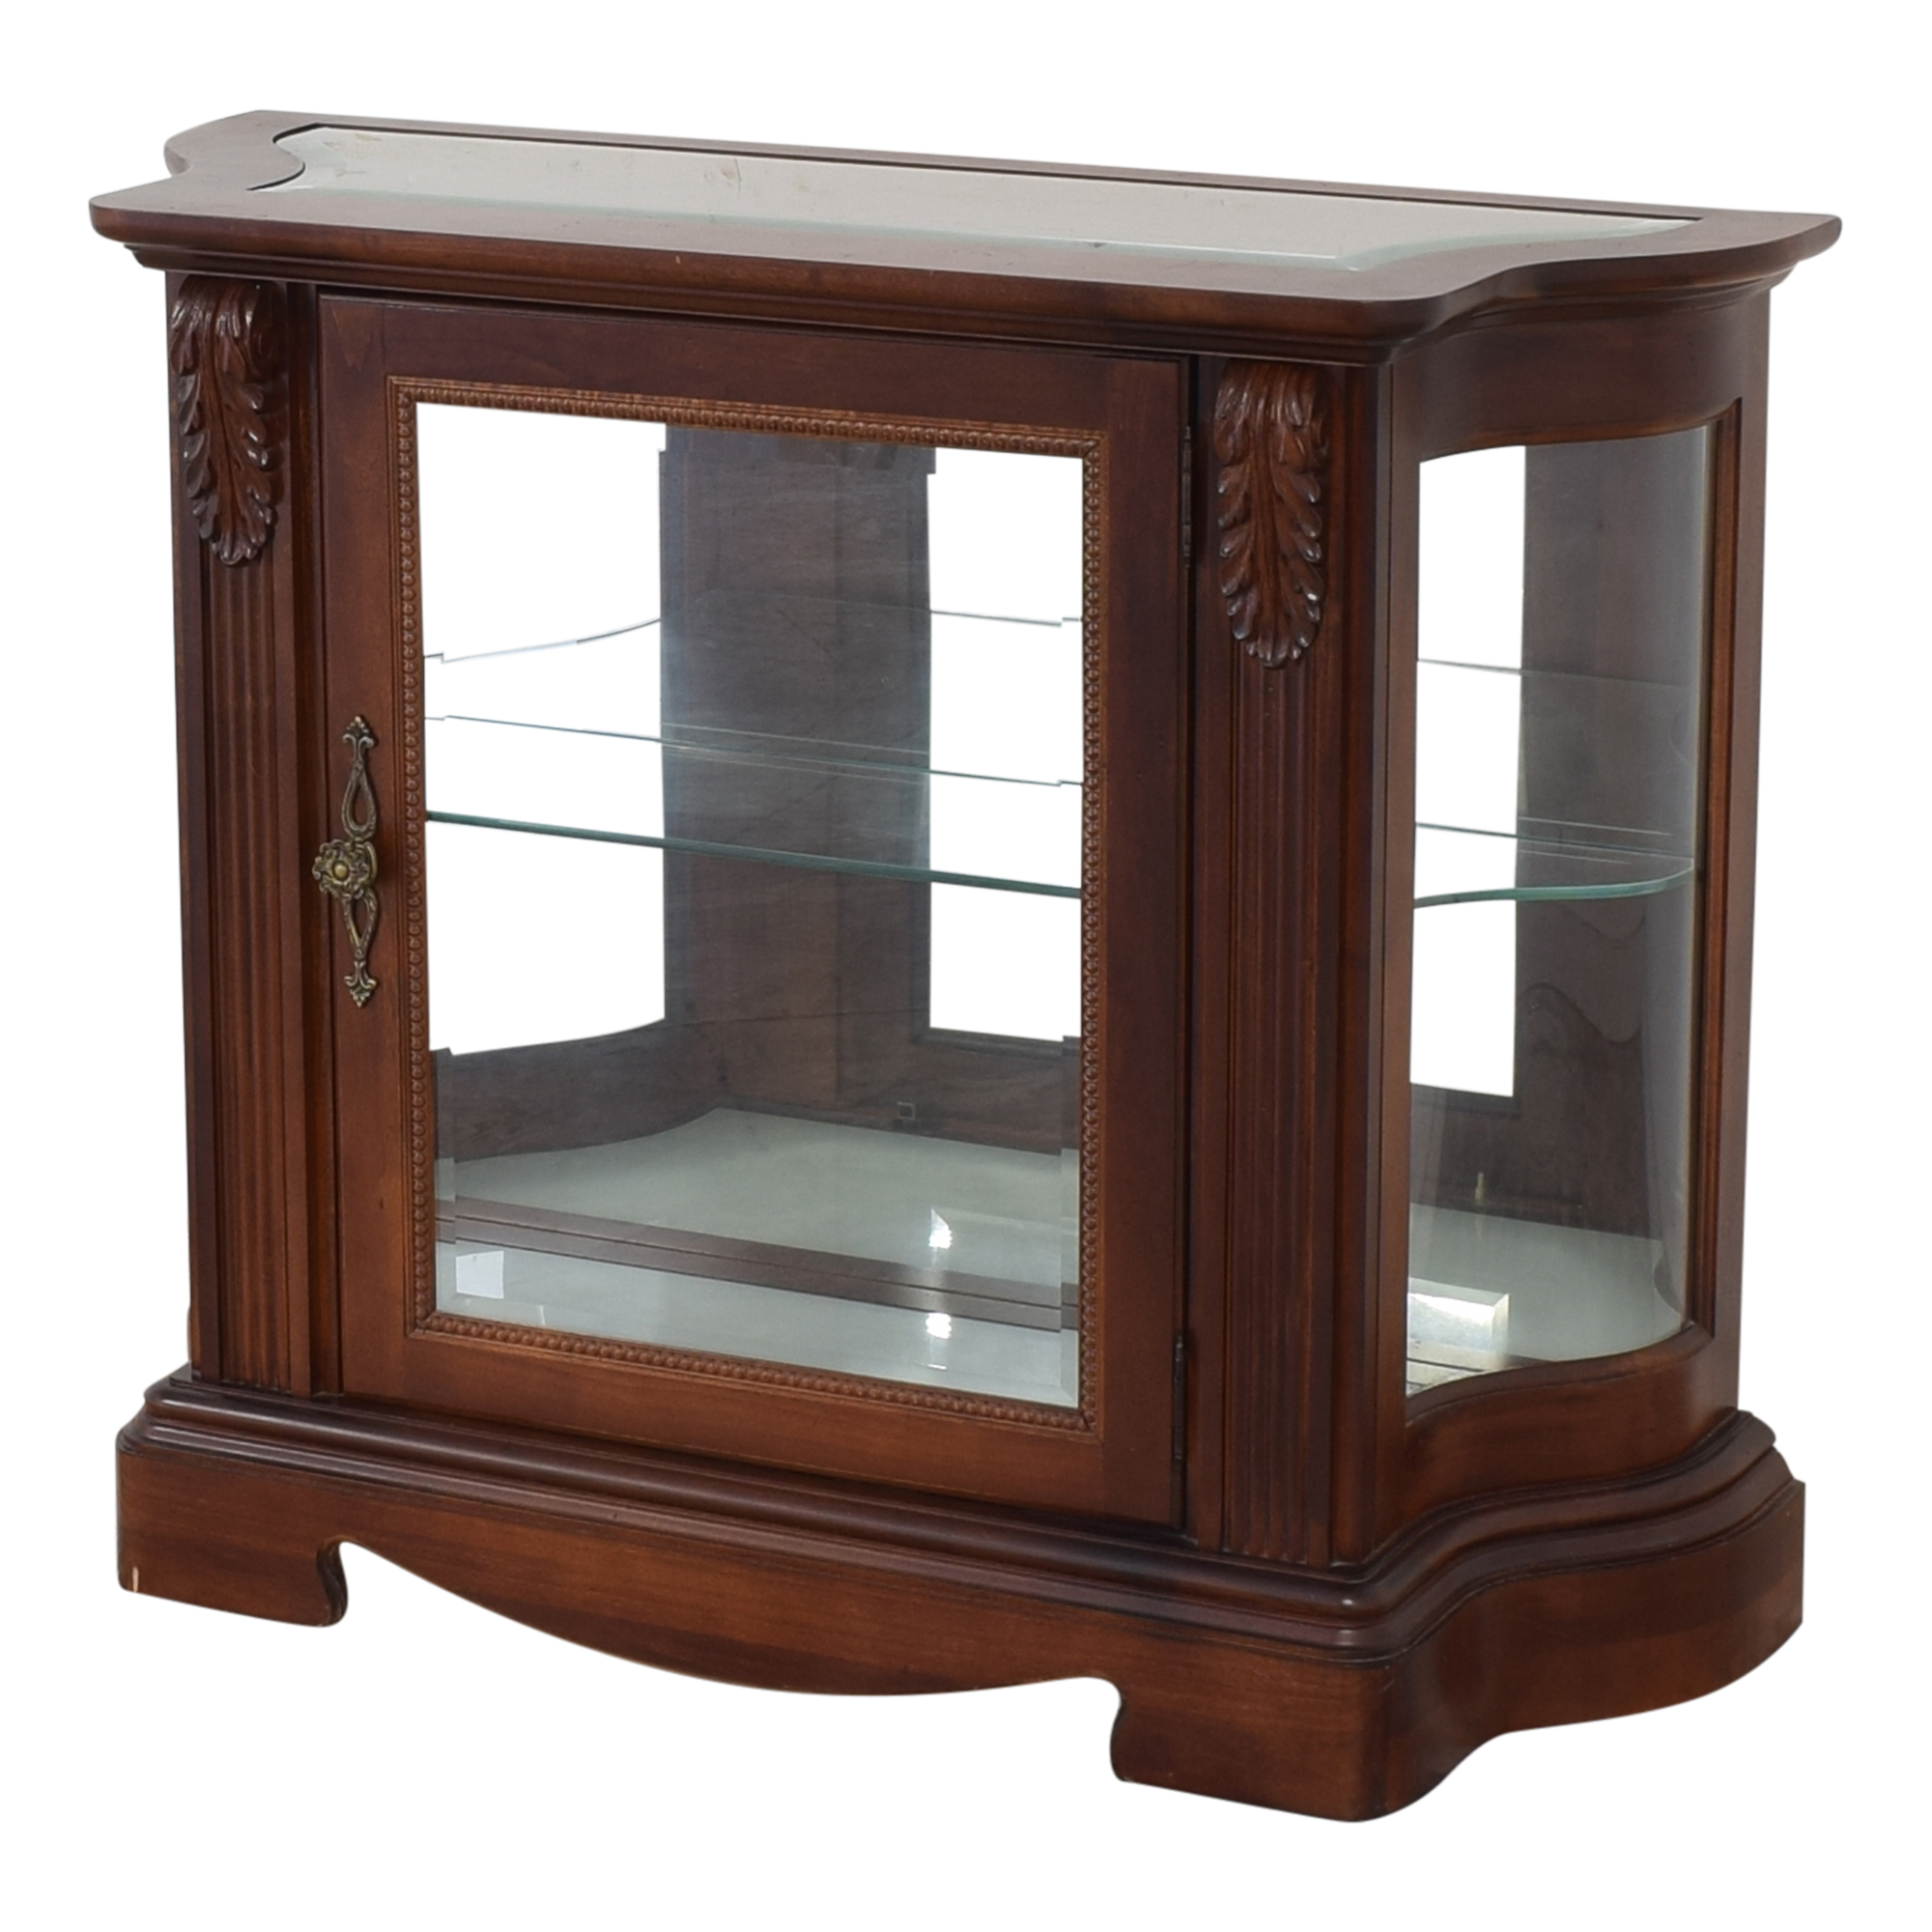 Thomasville Display Accent Table / Storage